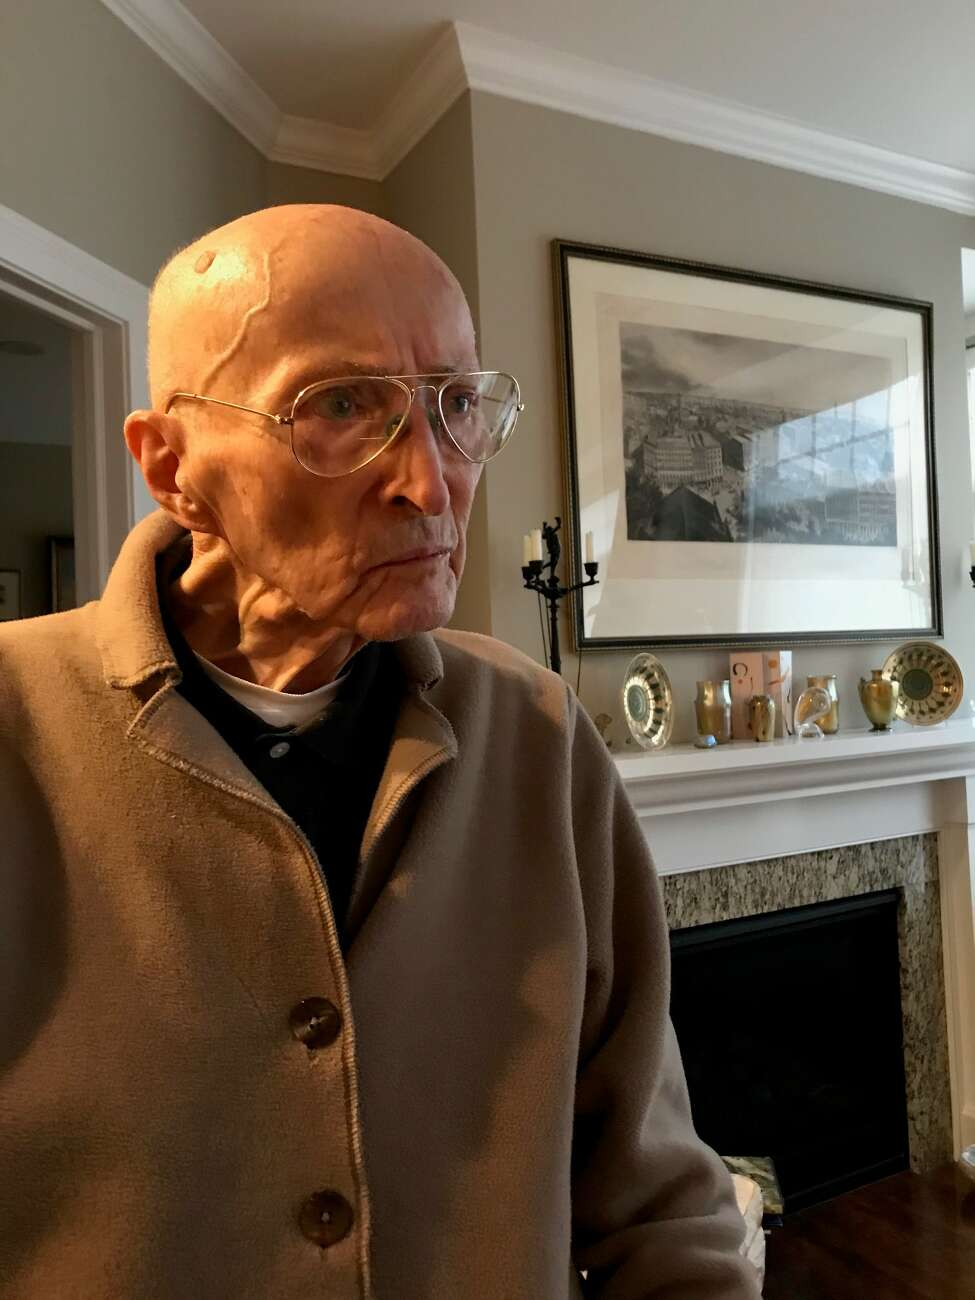 Norman Rice, 93 years old and in failing health, and he is going through his papers and large collection of paintings, books and art objects, most of which he intends to donate to the Albany Institute of History & Art, where he was first hired as curator in 1953.